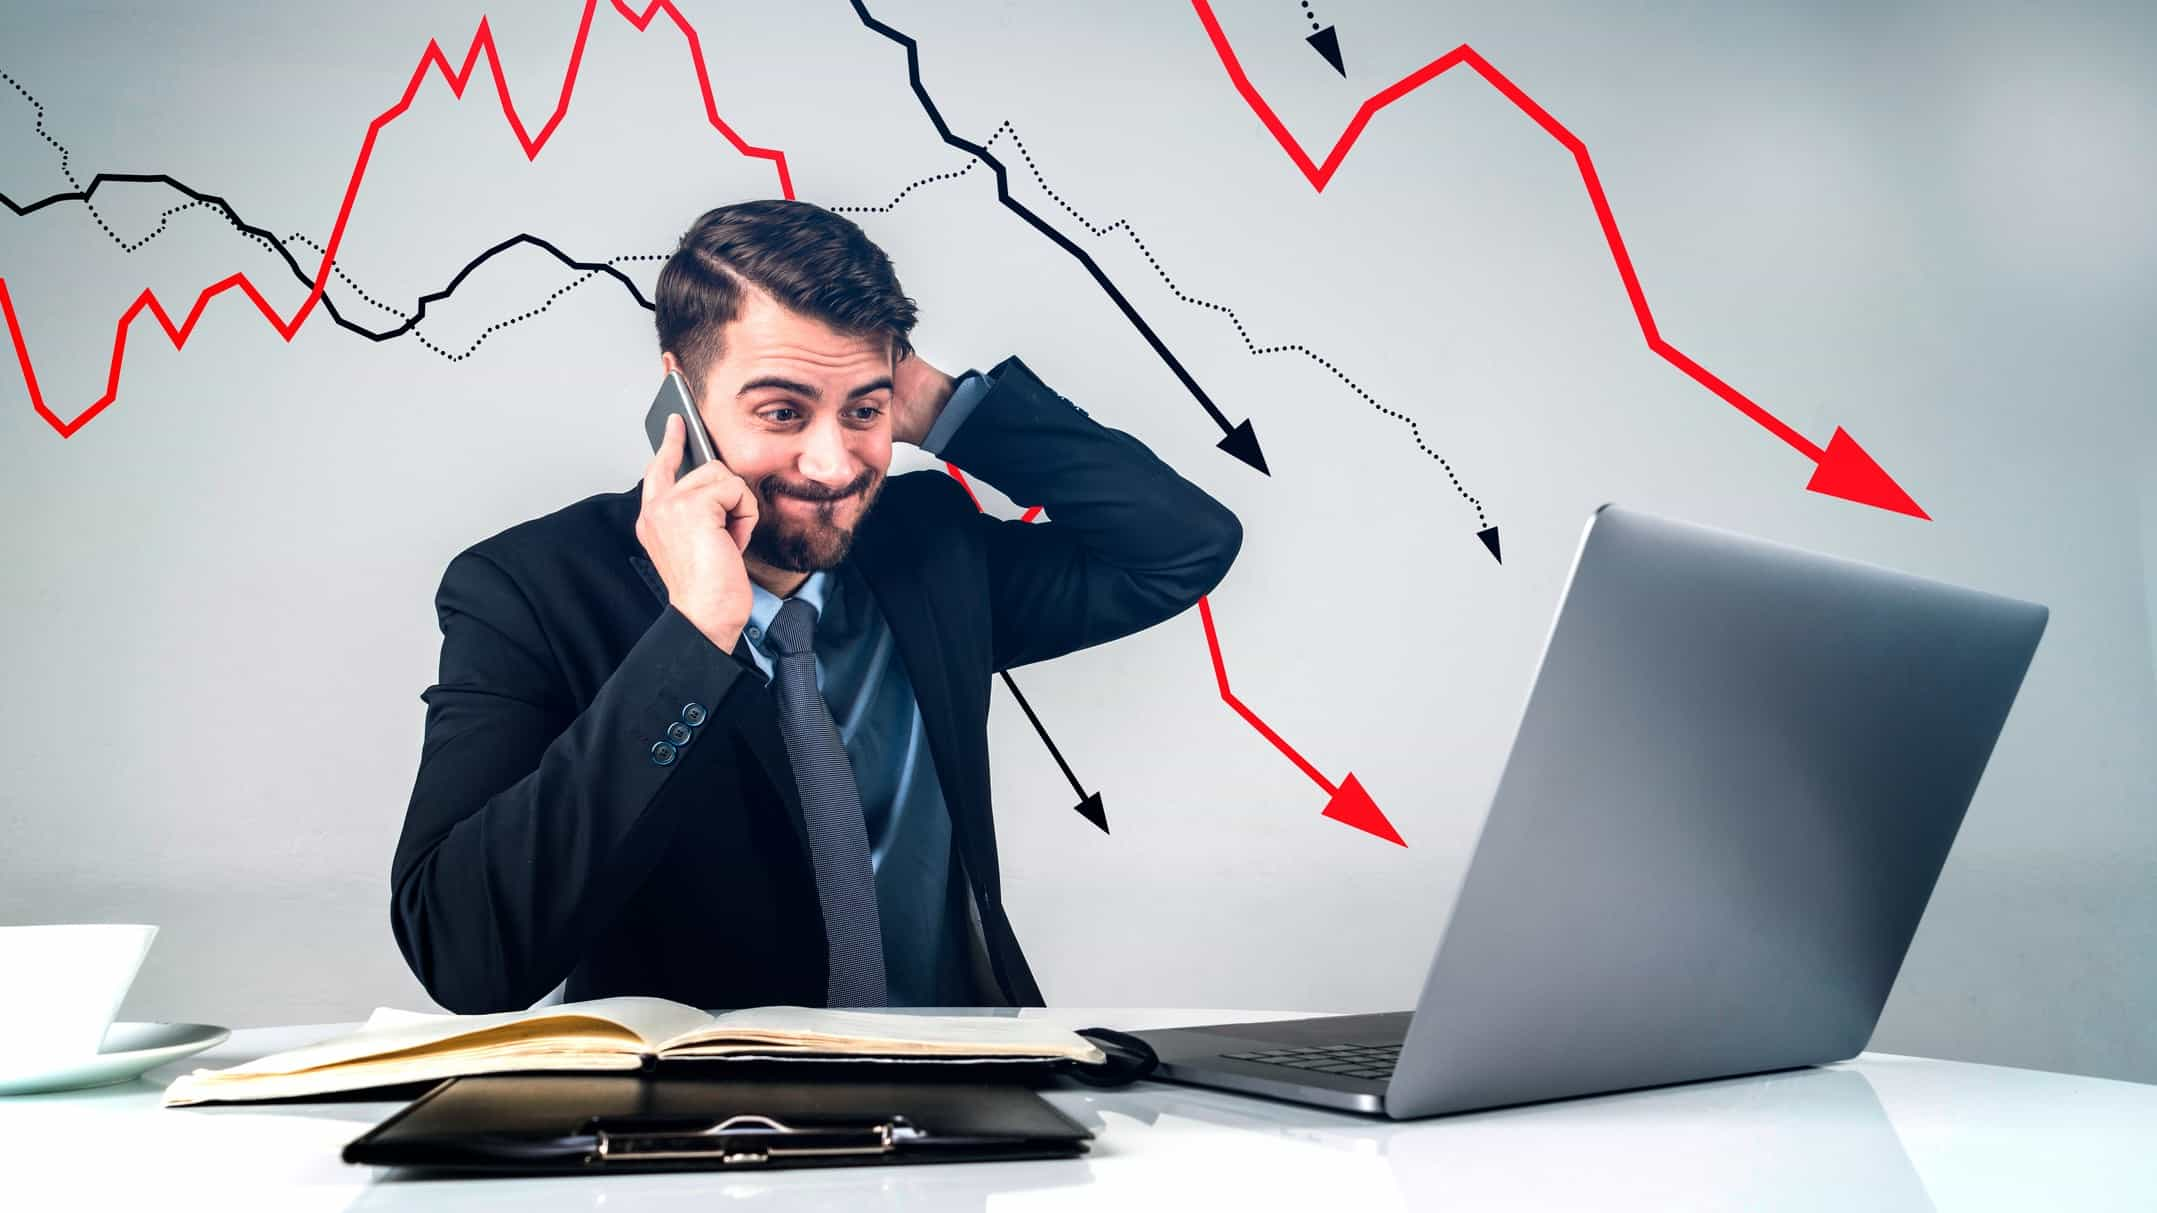 shocked man looking at laptop with declining arrows in the background showing a falling share price